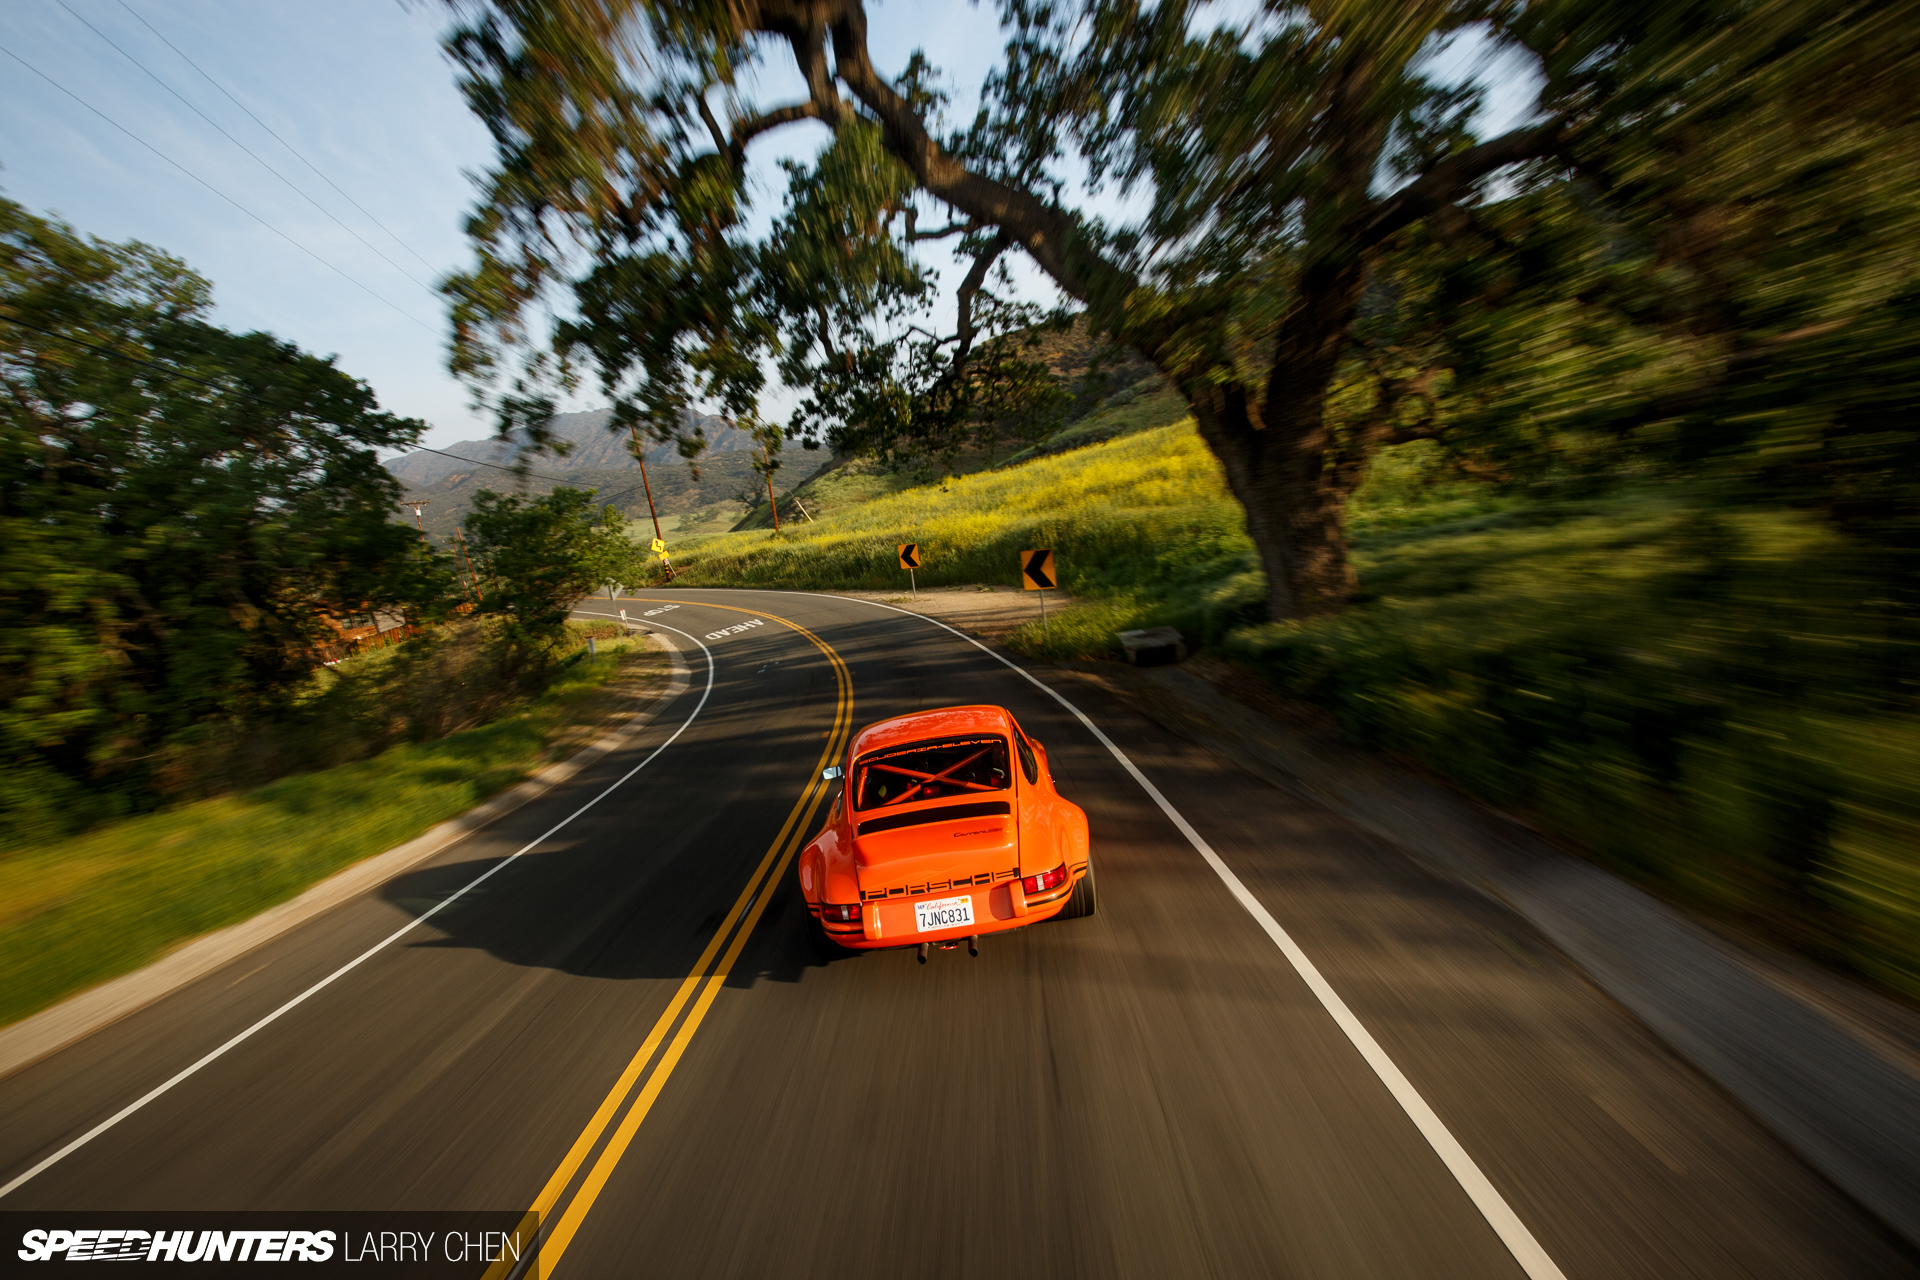 Larry_Chen_Speedhunters_best_2015_01